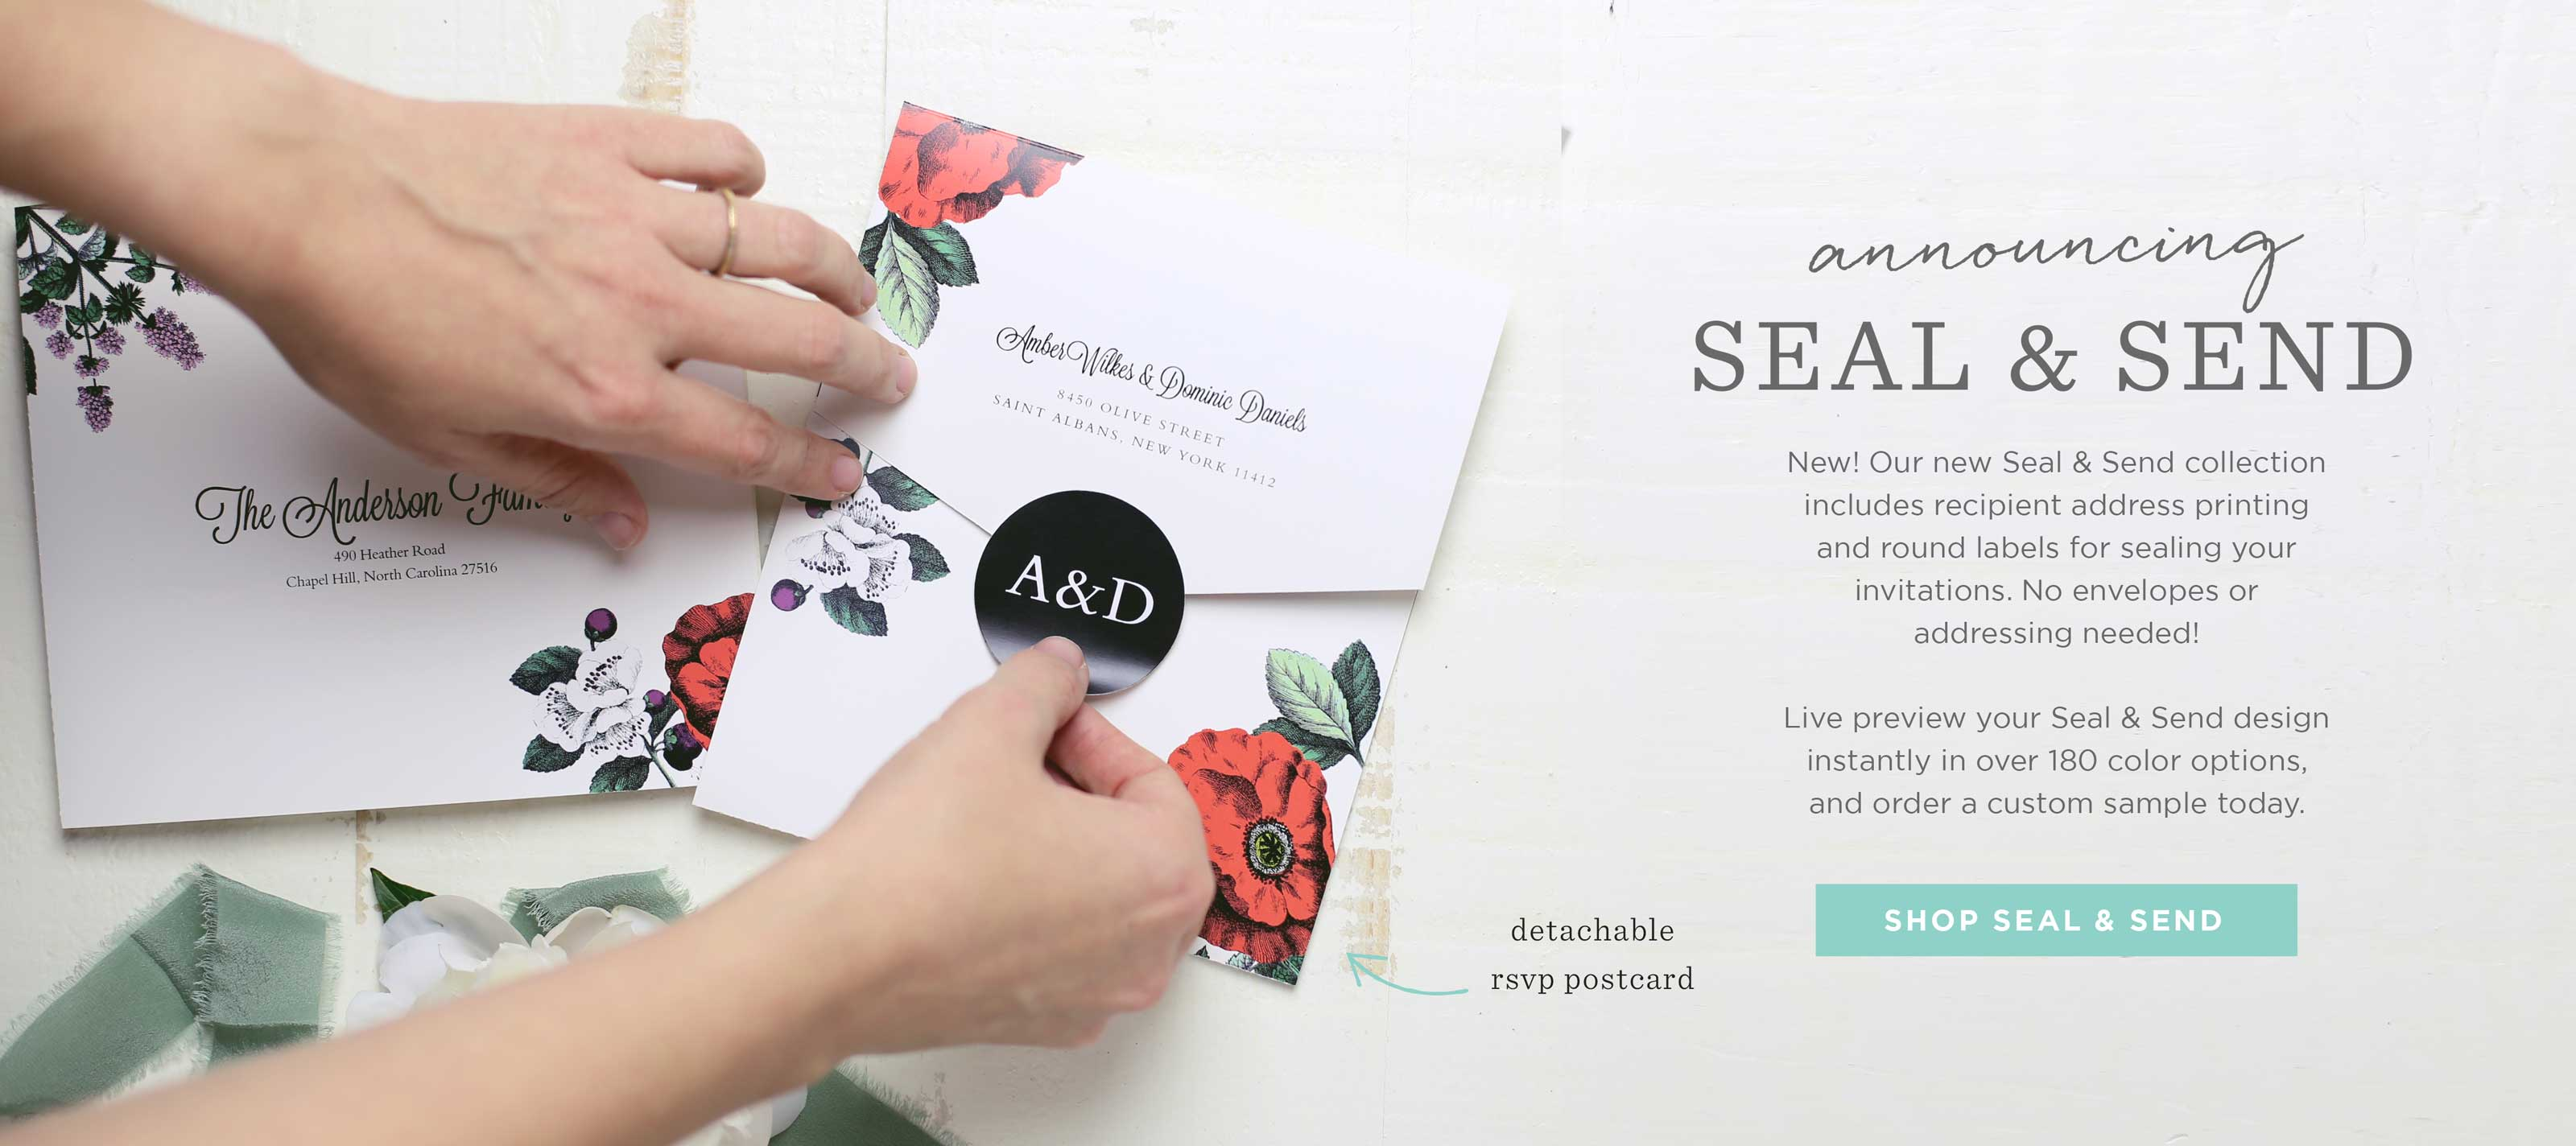 Seal and Send Wedding Invitations - All-in-one invitations complete with address and tear off RSVP